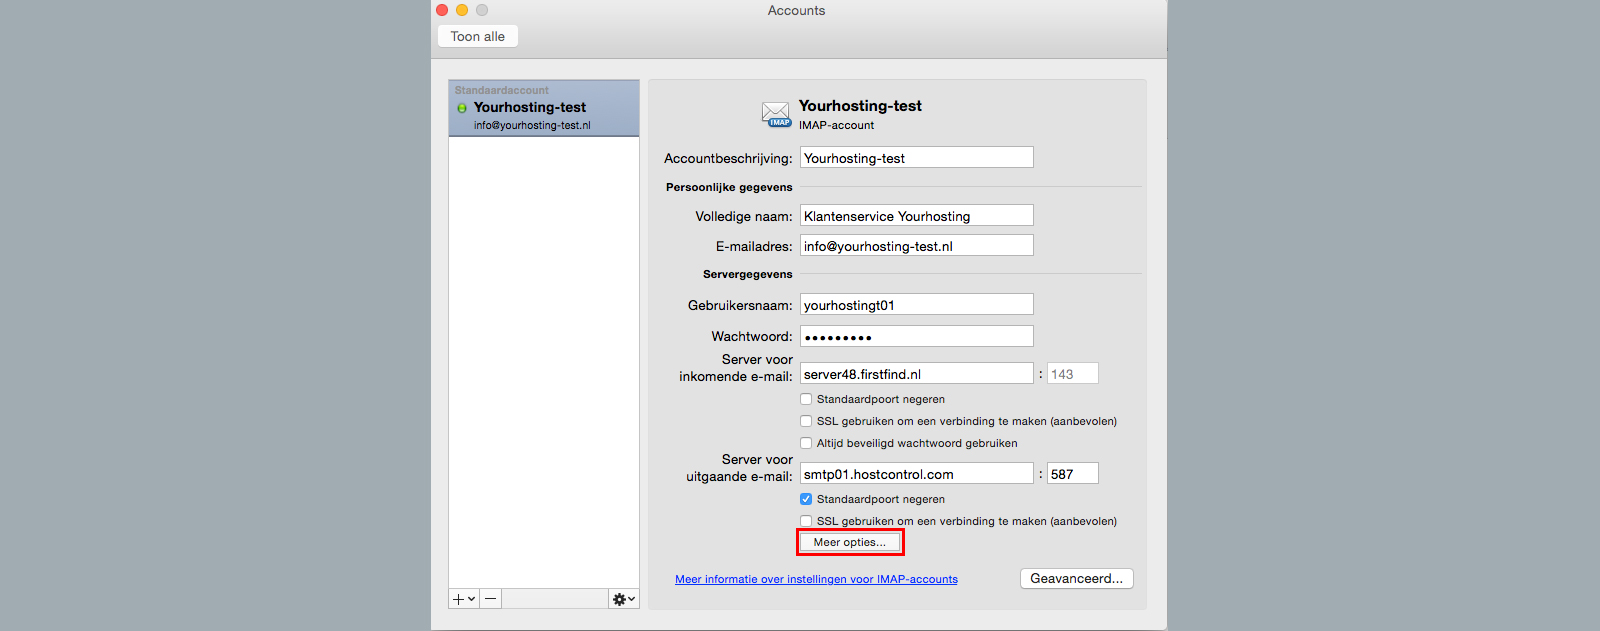 accounts meer opties outlook 2011 for mac